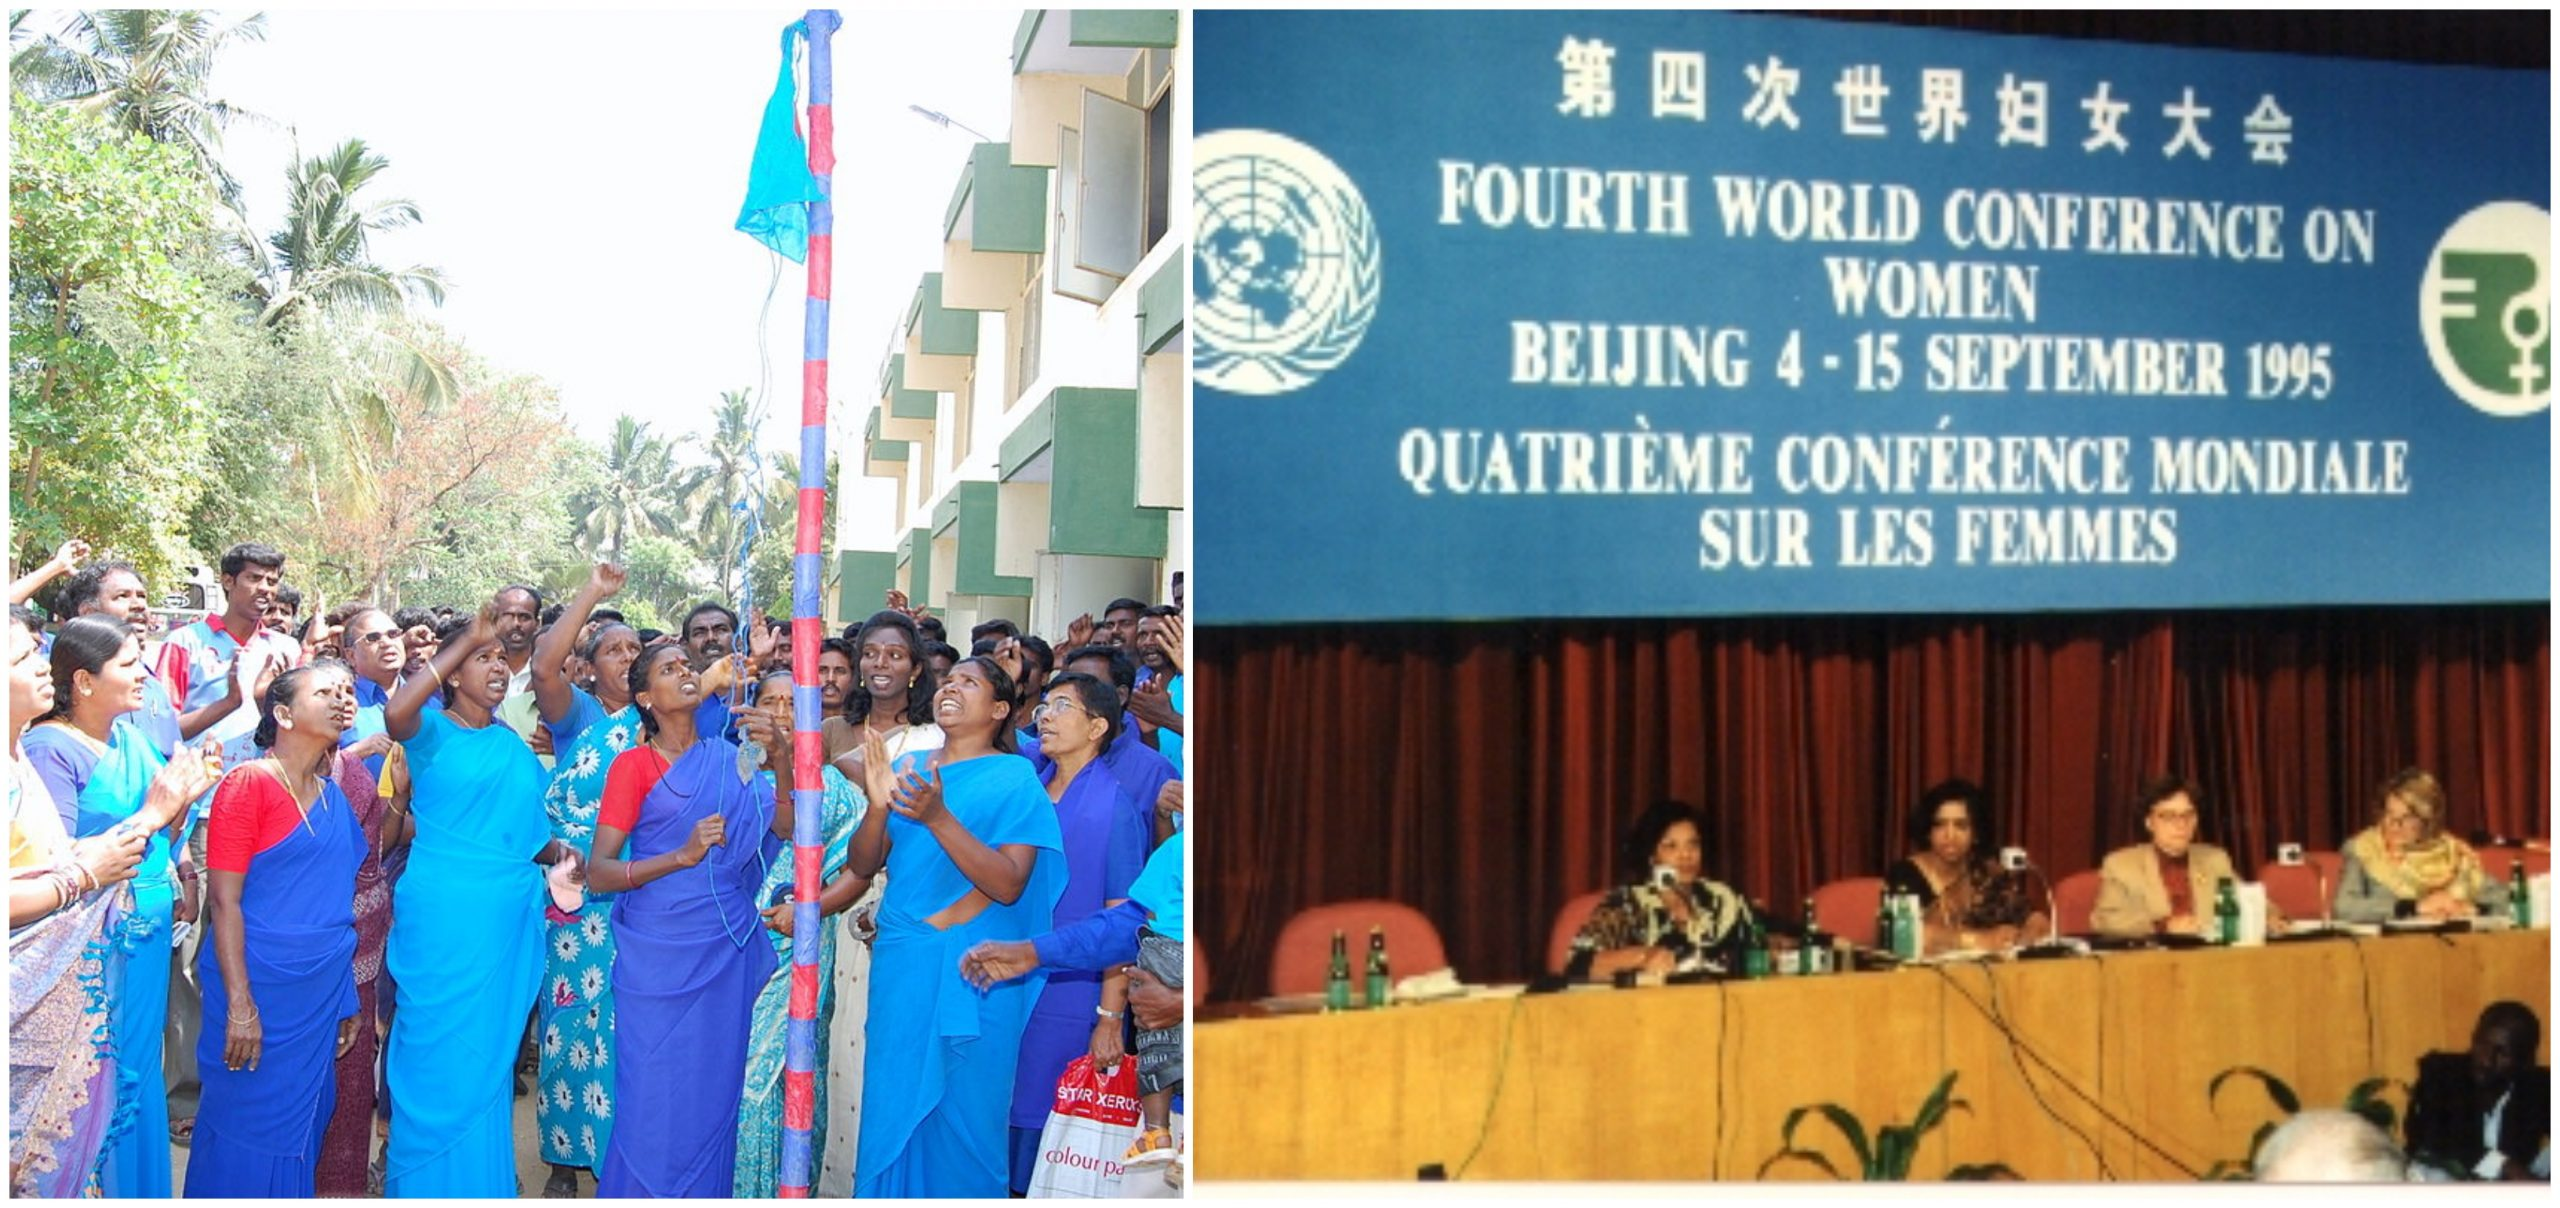 What Significance Did The 1995 Beijing Conference Hold For Dalit Women's Movement?